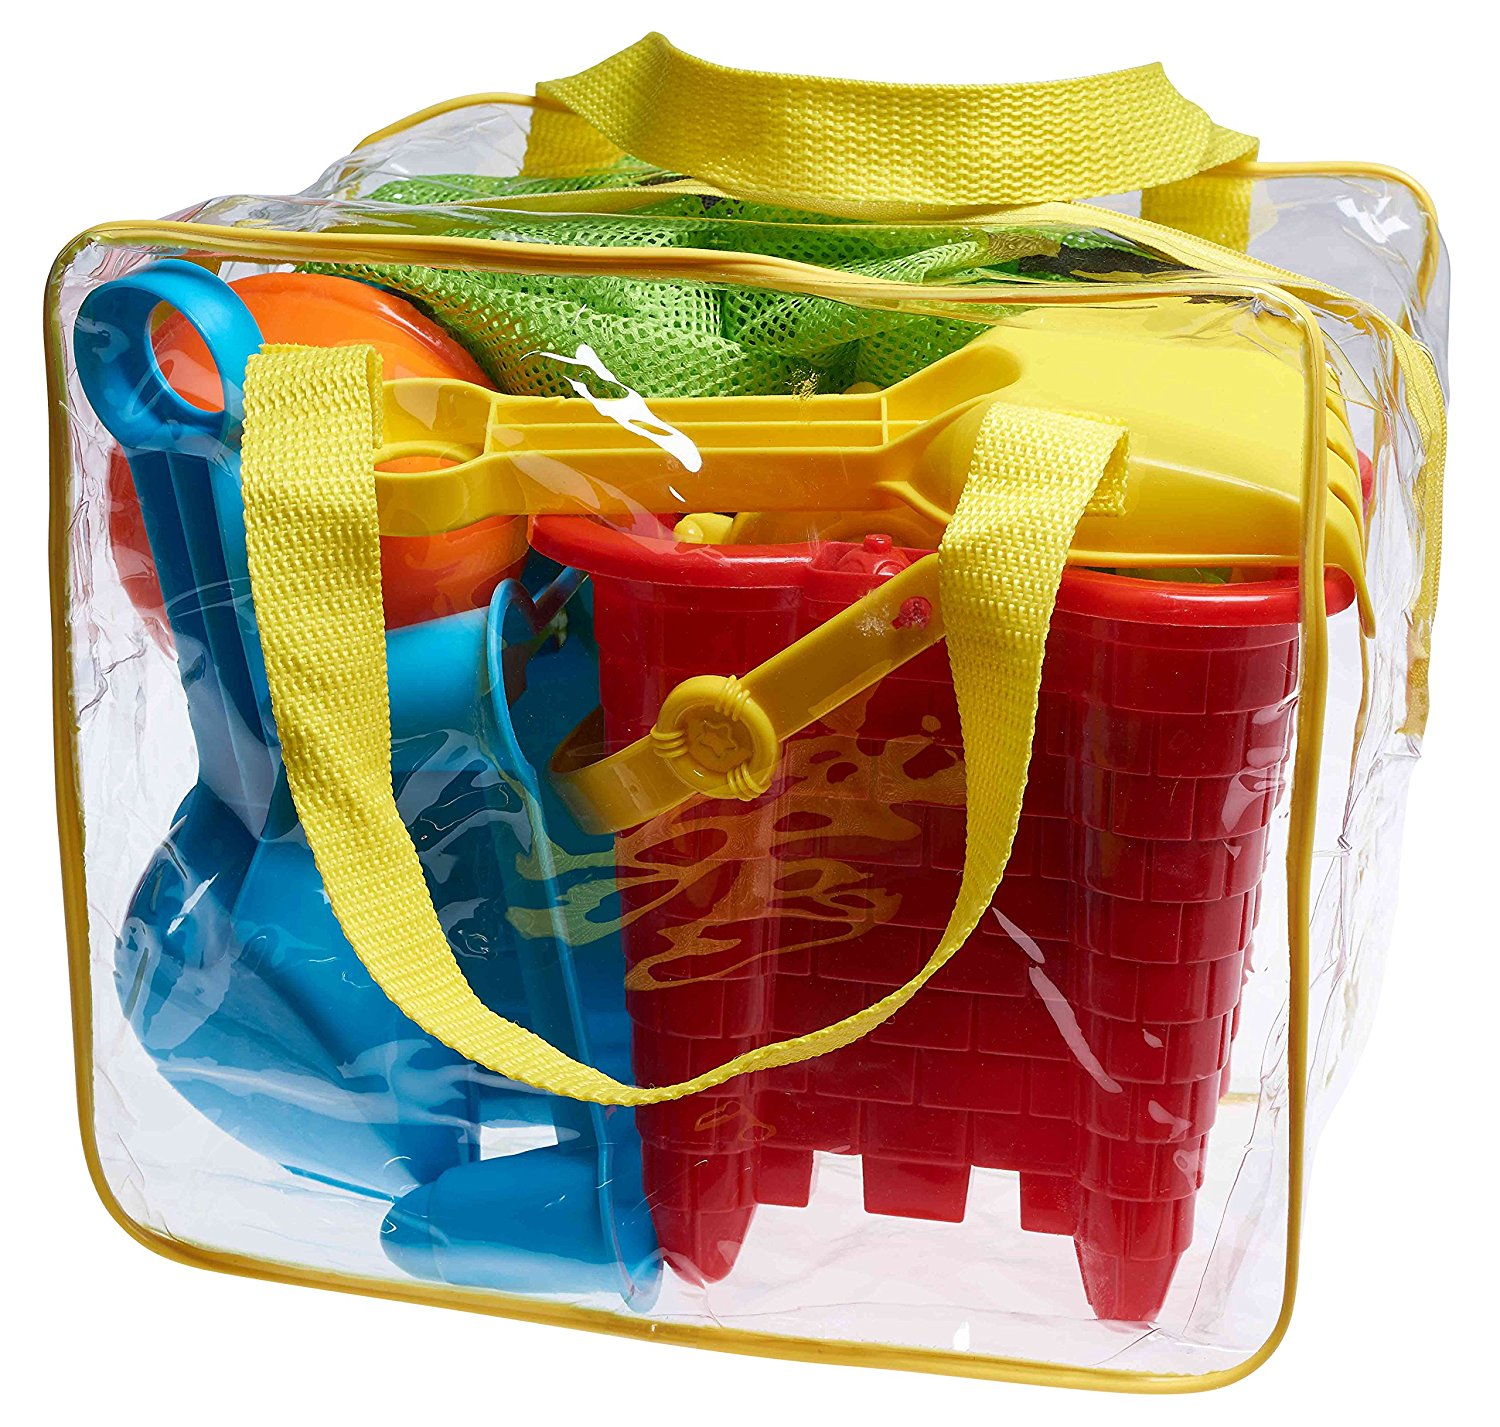 Beach Toy Set In Reusable Zippered Bag With Mesh For Easy Clean And